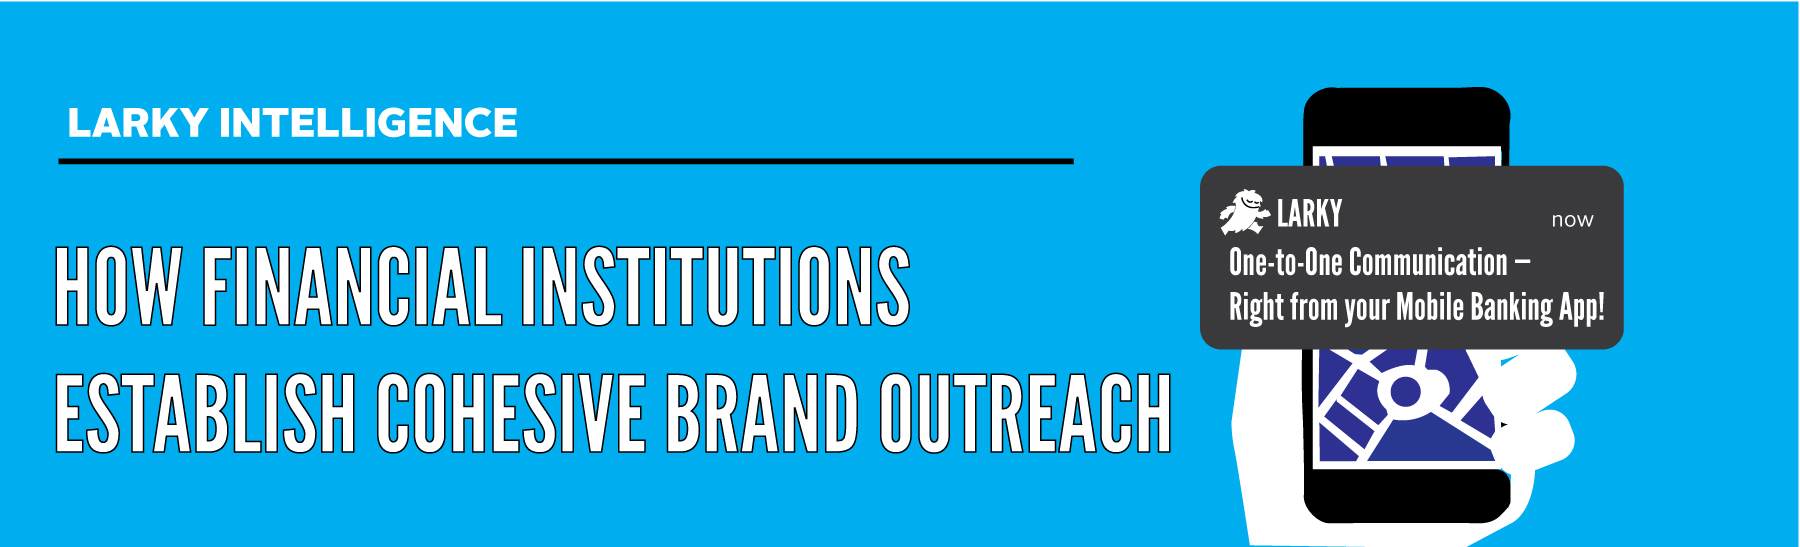 How Financial Institutions Establish Cohesive Brand Outreach